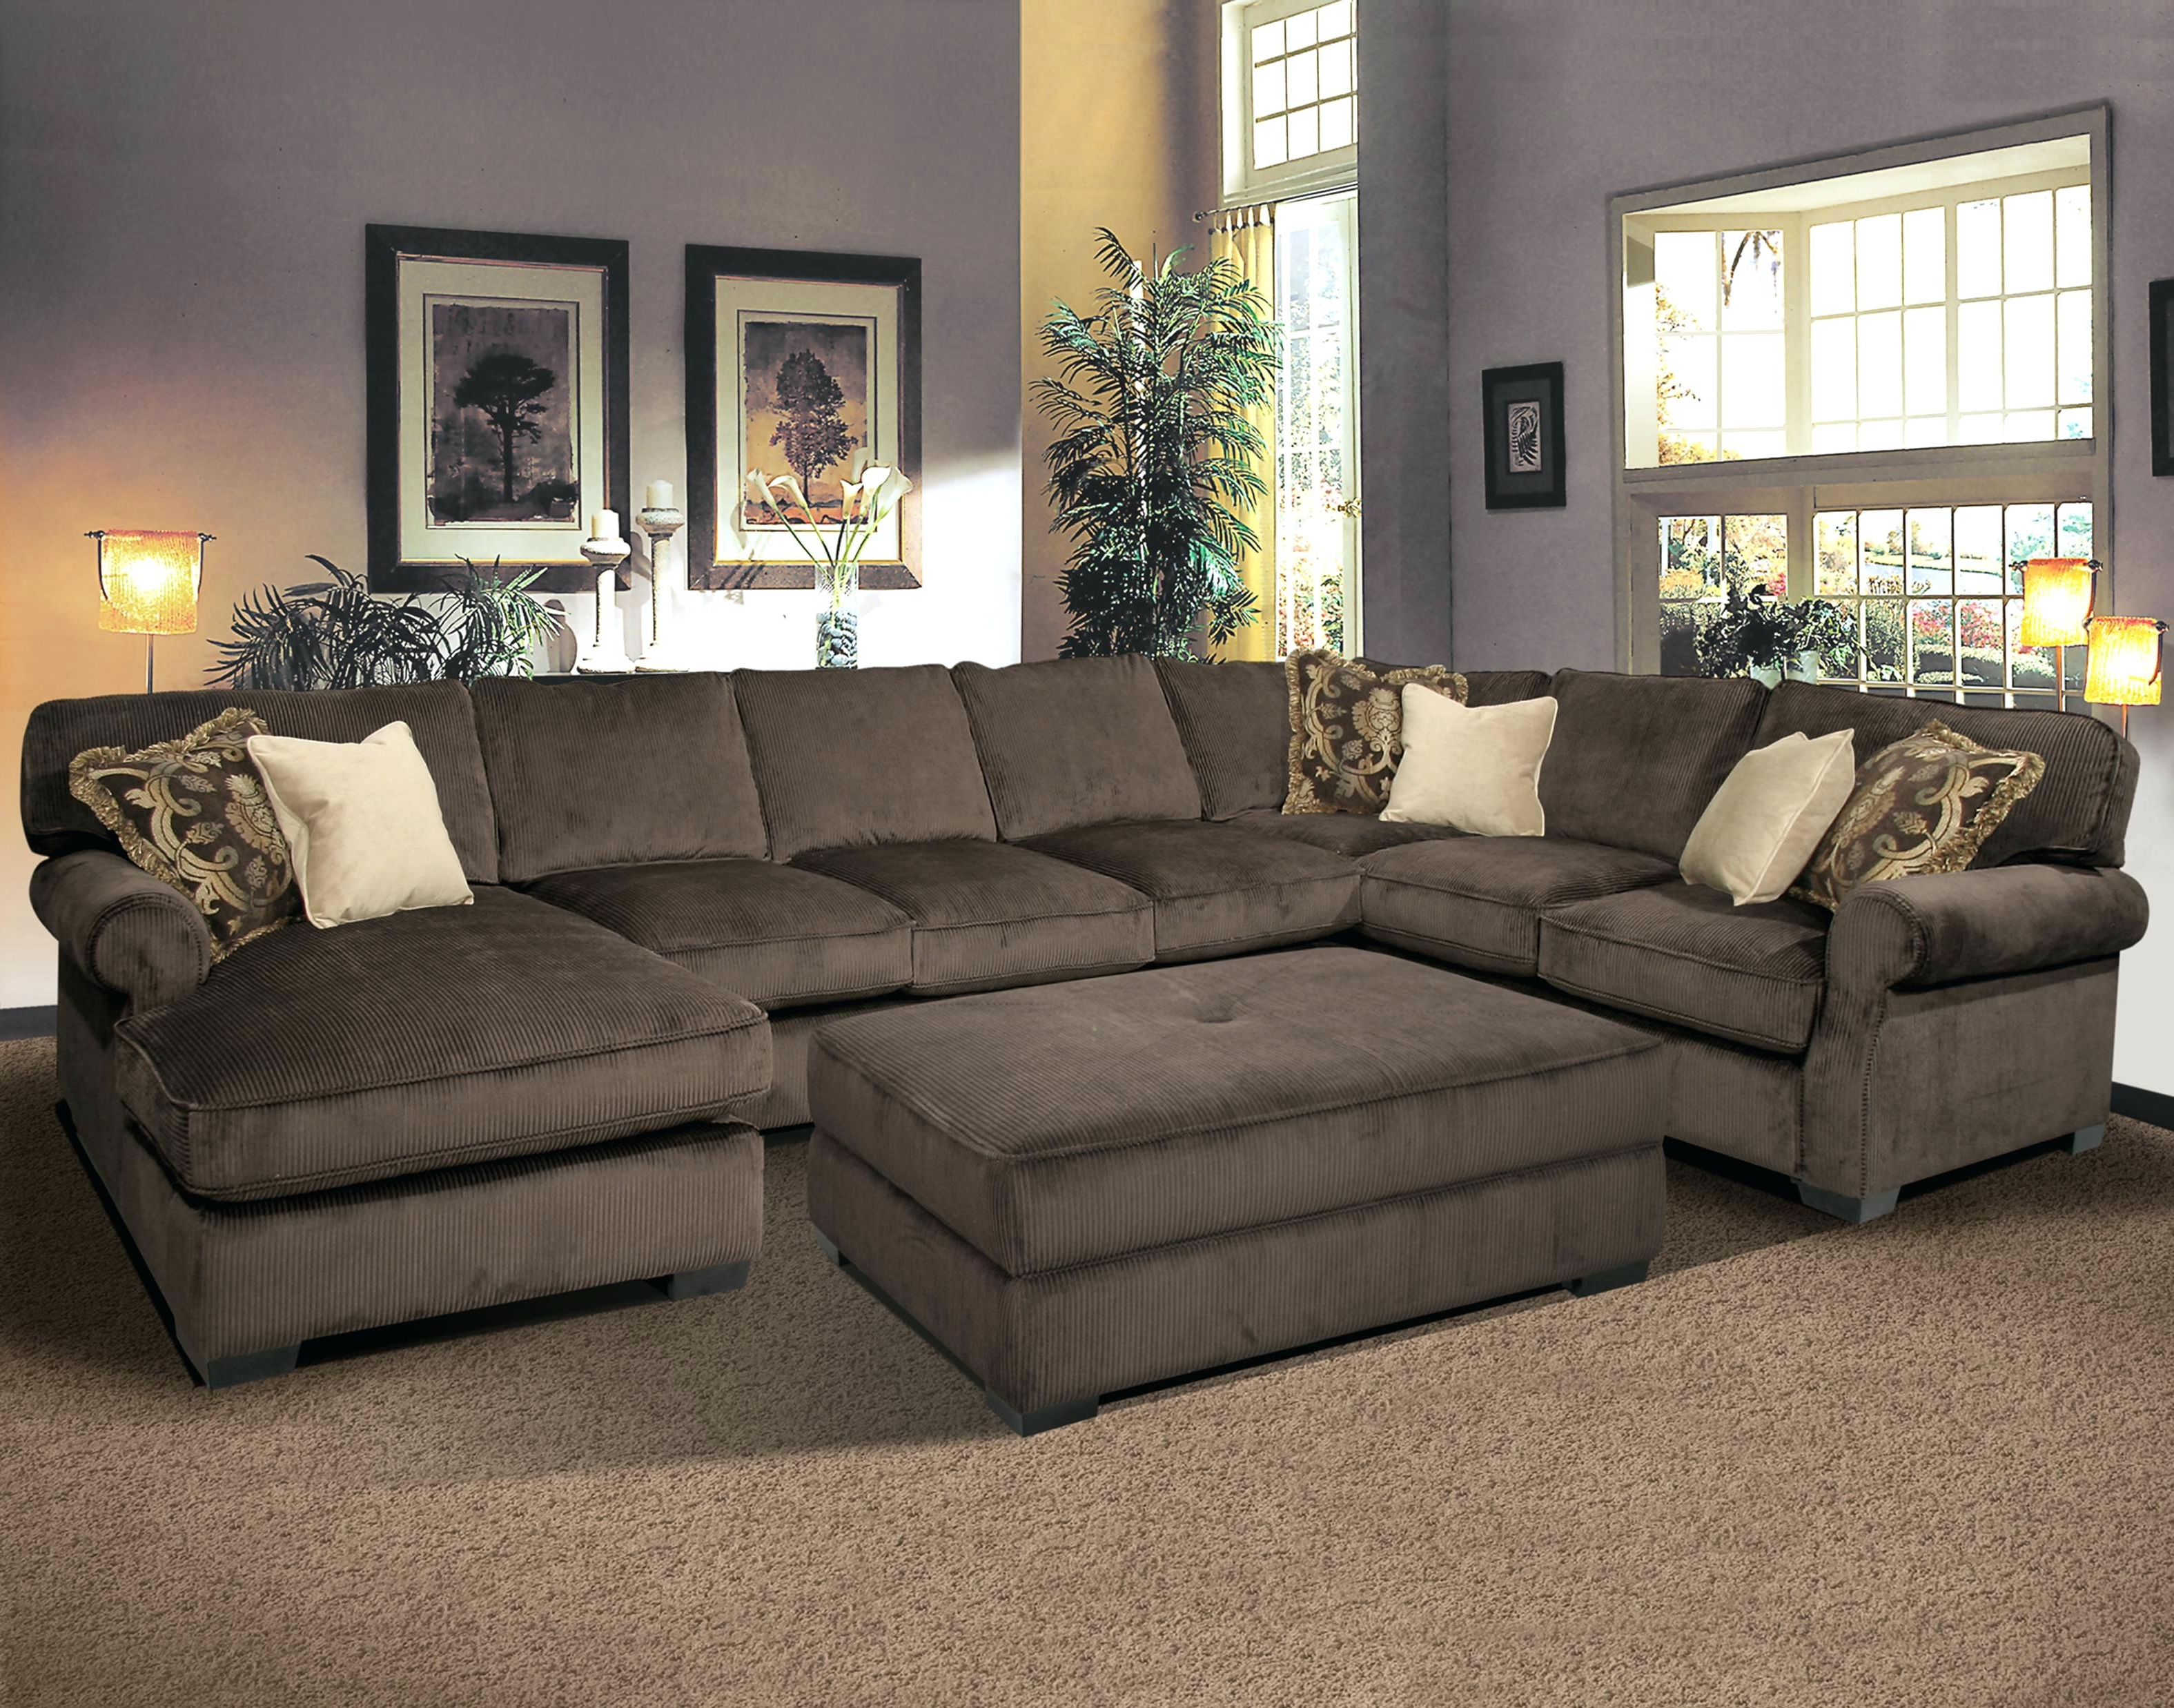 Extra Large Sectional Sofas Leather Couches With Recliners Modern Pertaining To Trendy Huge U Shaped Sectionals (View 3 of 15)